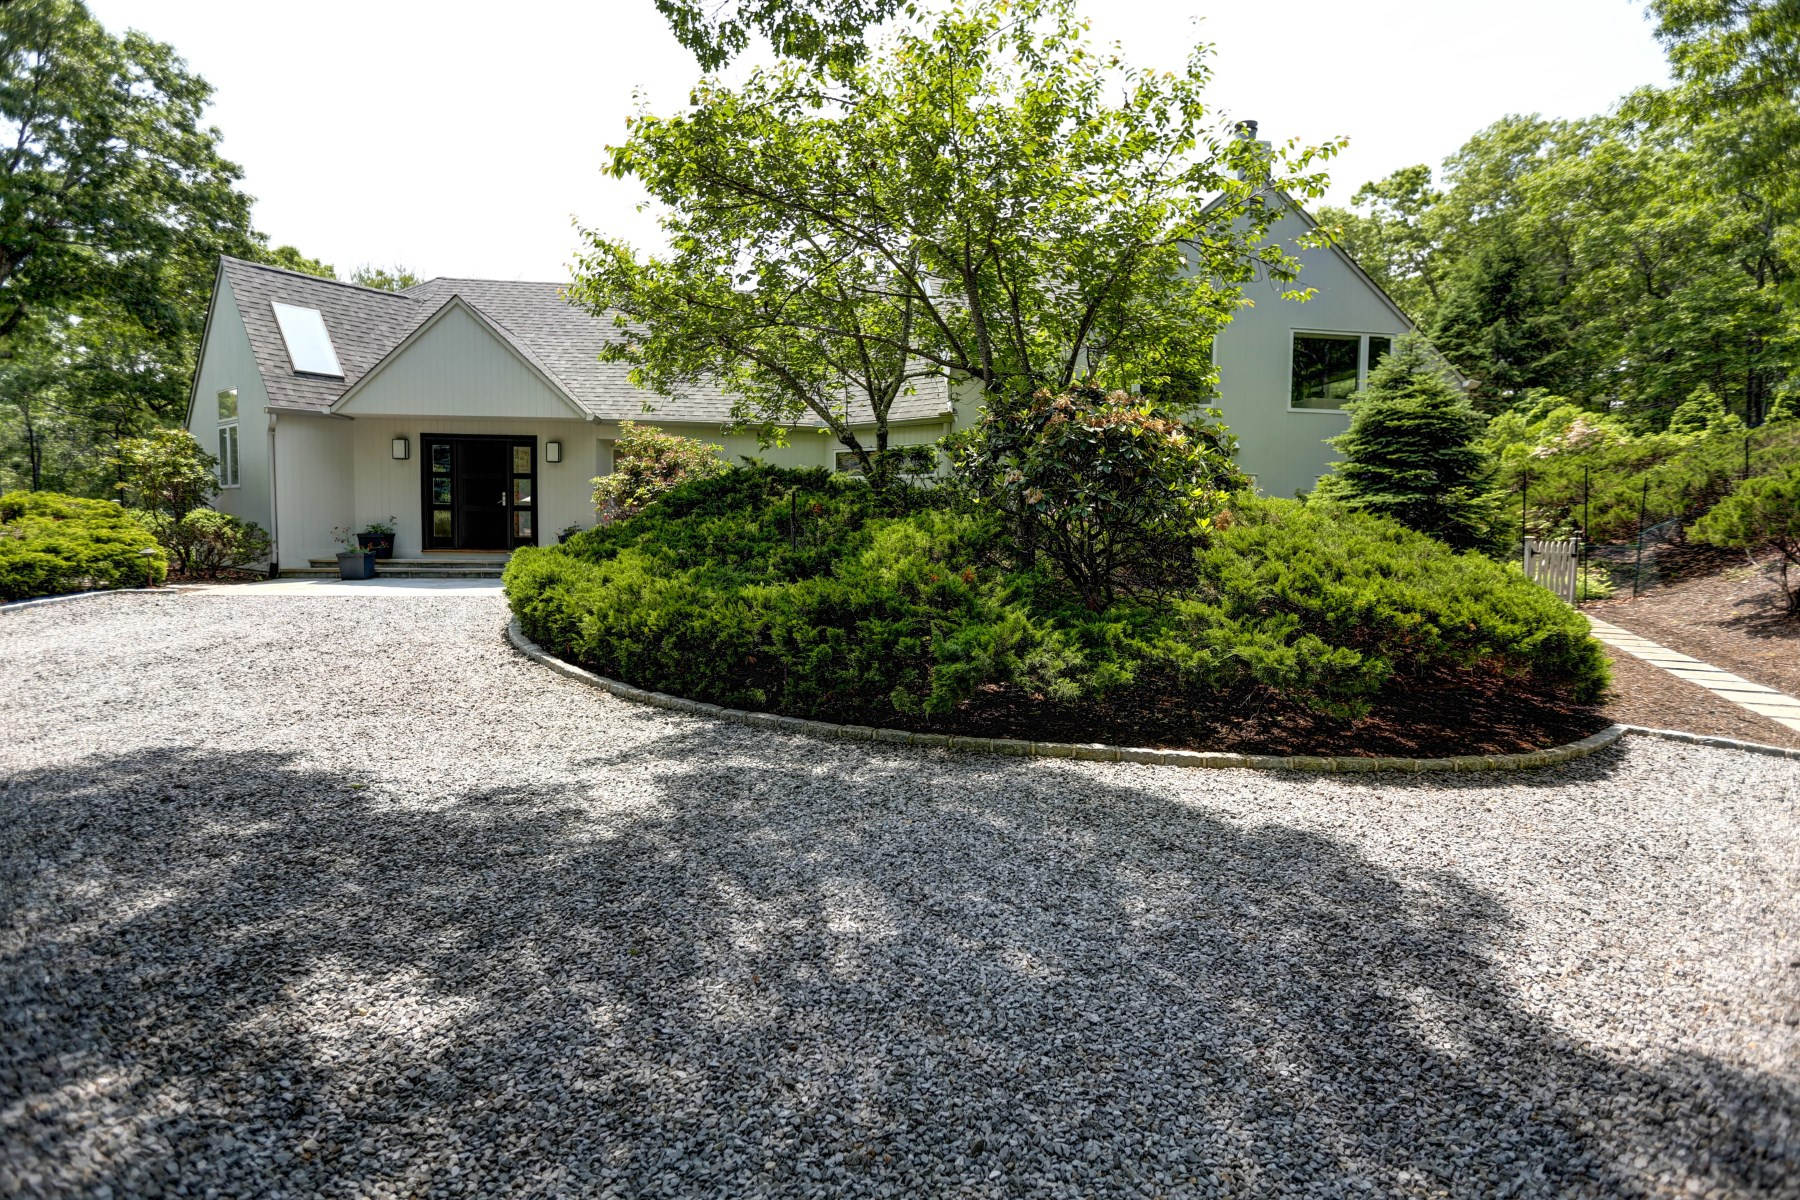 Single Family Home for Sale at Chic Perfection with Privacy 122 Merchants Path Sag Harbor, New York 11963 United States